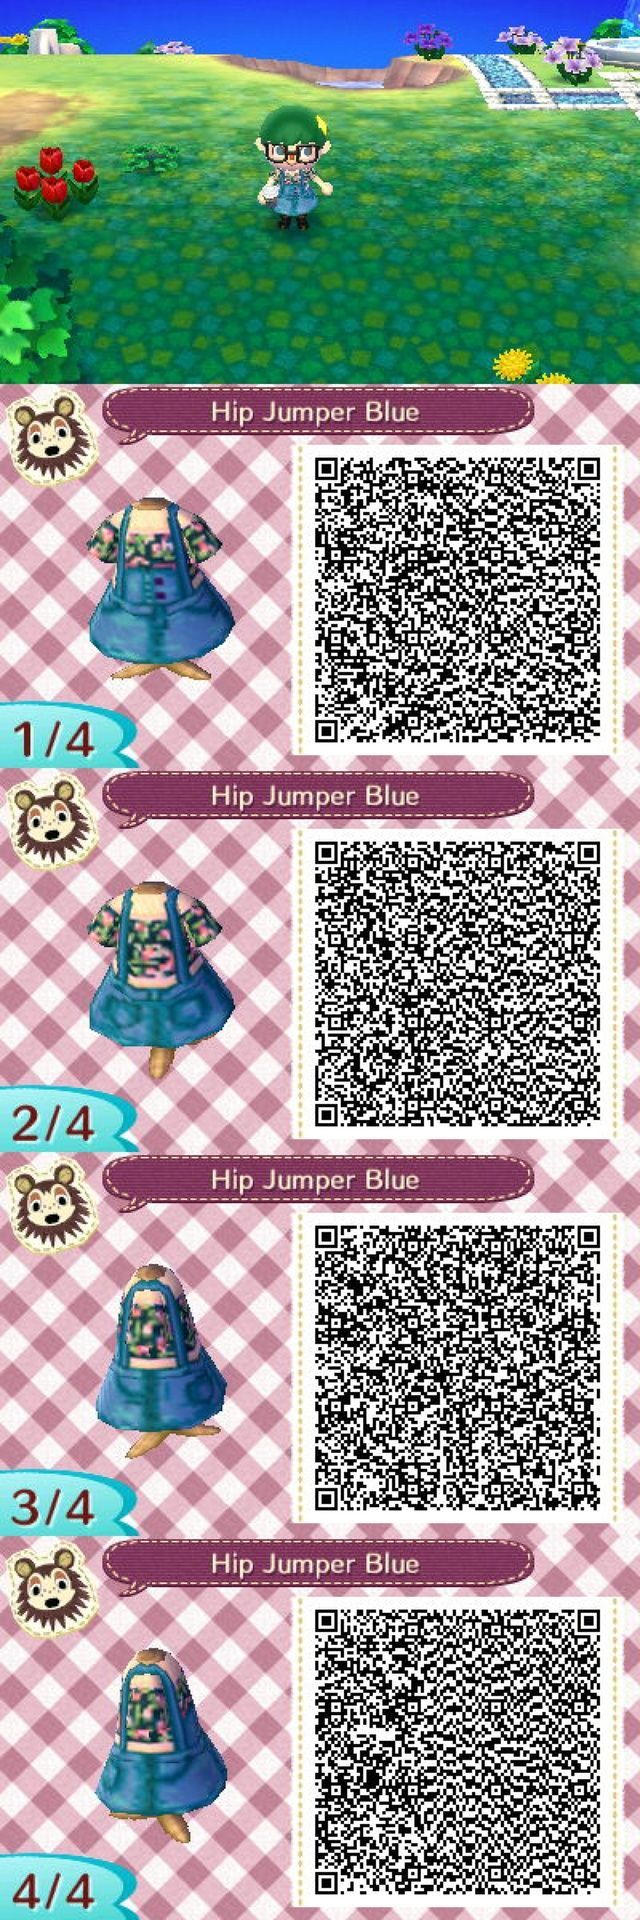 Acnl summer dress qr codes 666